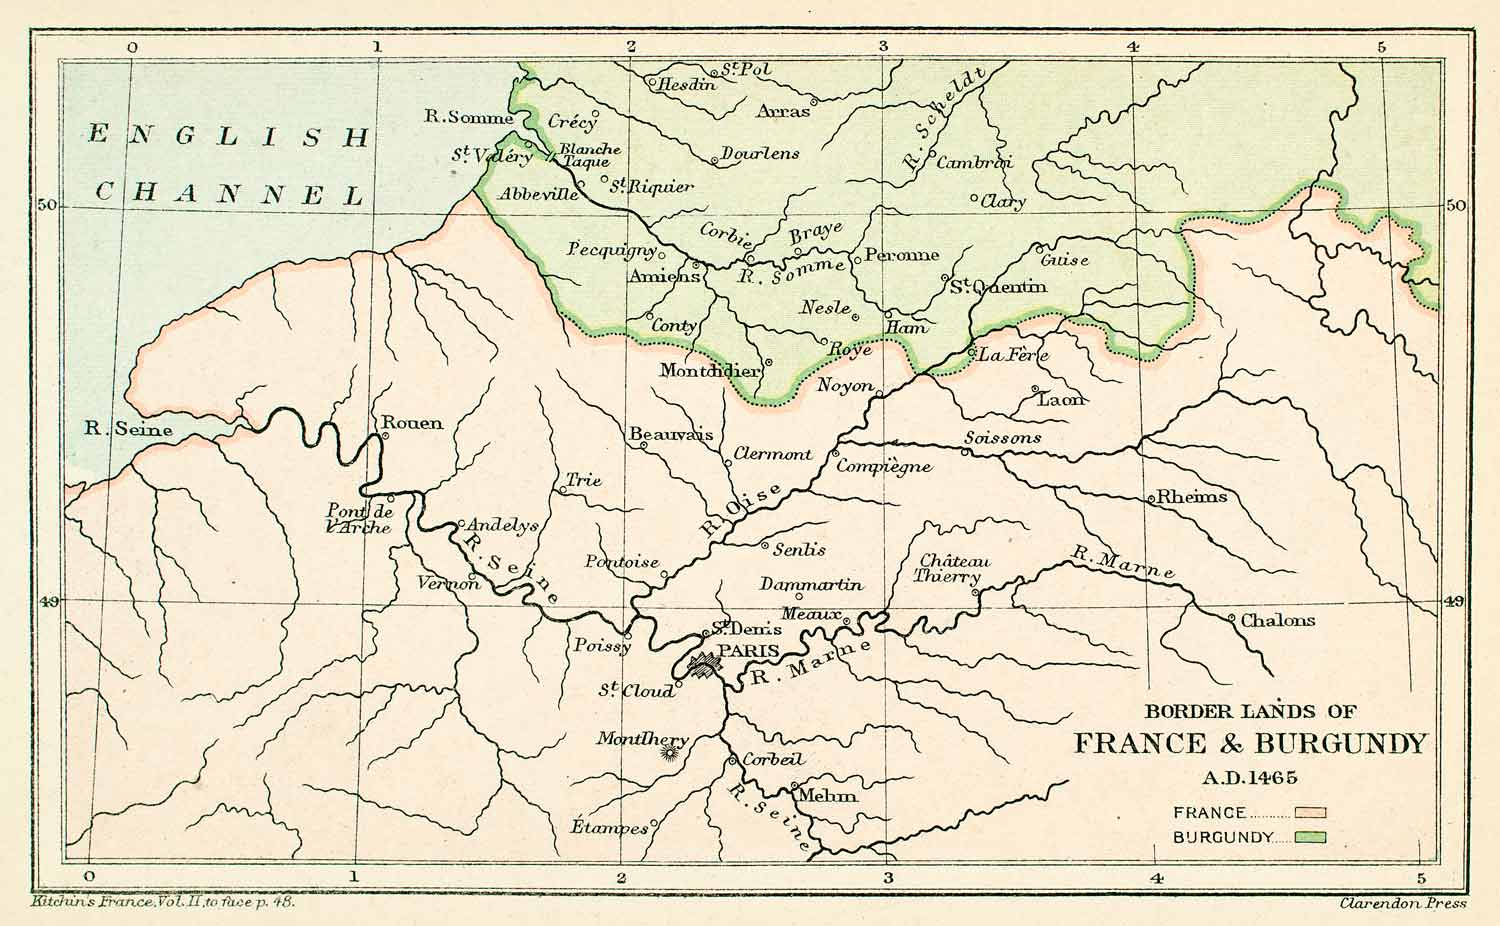 River Map Of France.1896 Lithograph Map France Burgundy English Channel River Seine Marne Paris Xeb2